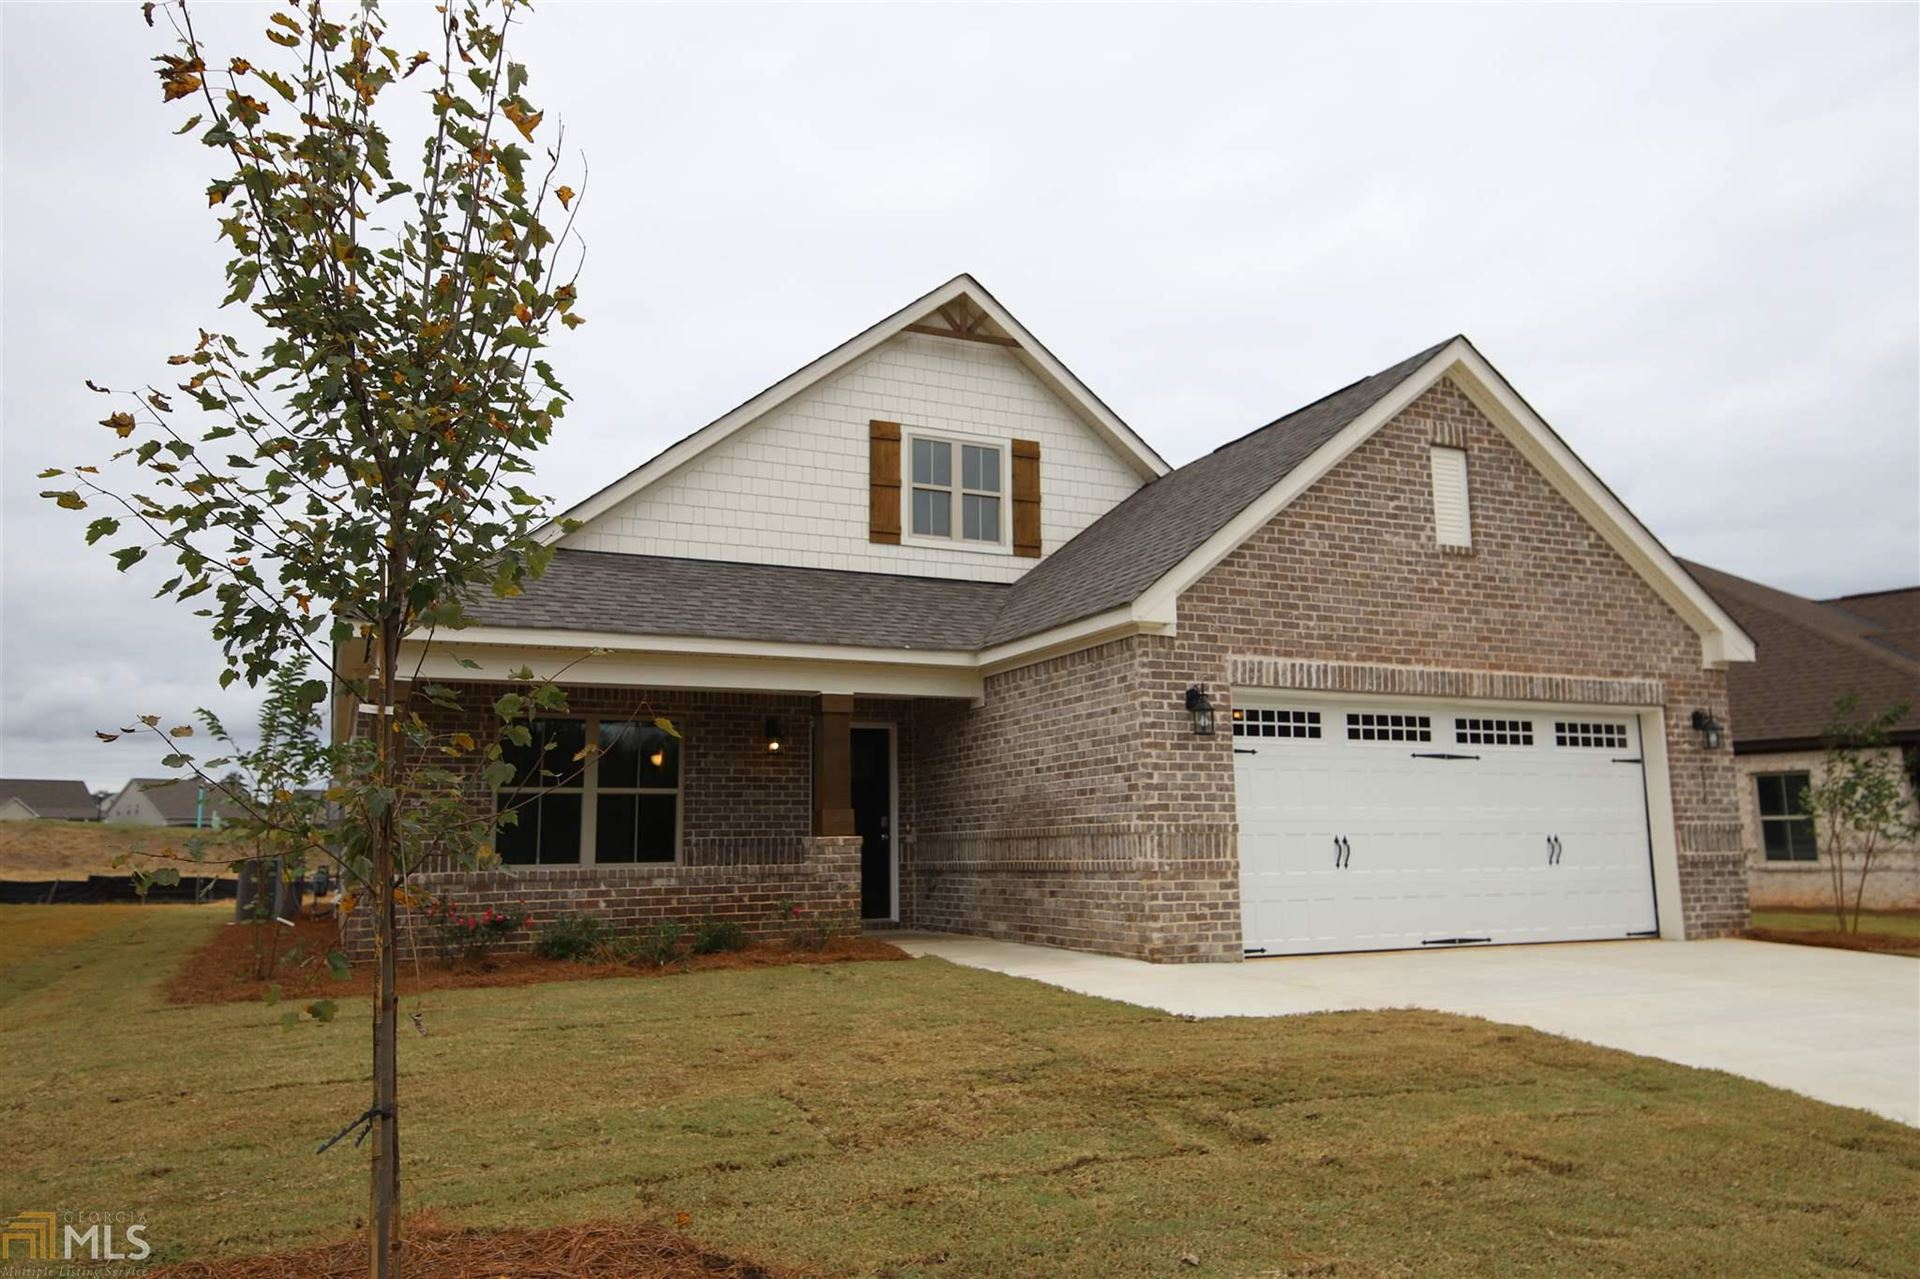 536 Lago Ct, LaGrange, GA 30241 - #: 8828381